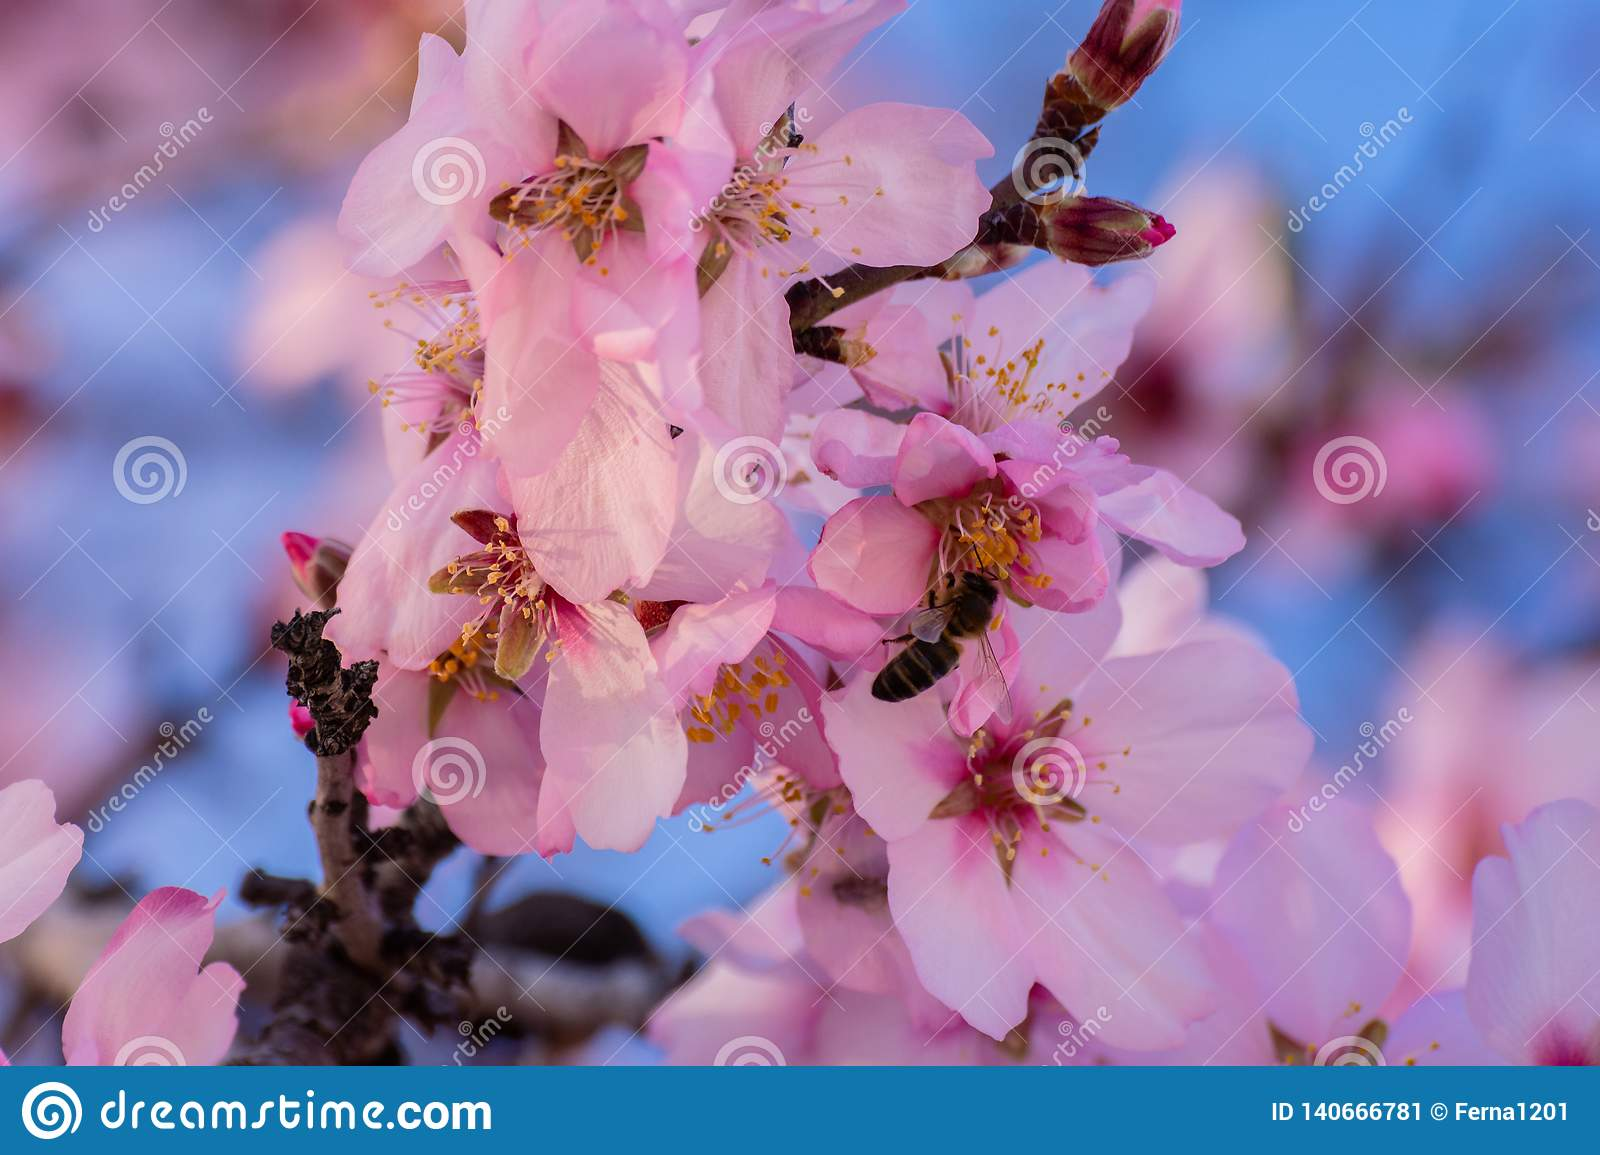 Close up of flowering almond trees. Beautiful almond blossom on the branches. Spring almond tree and pink flowers with branch and